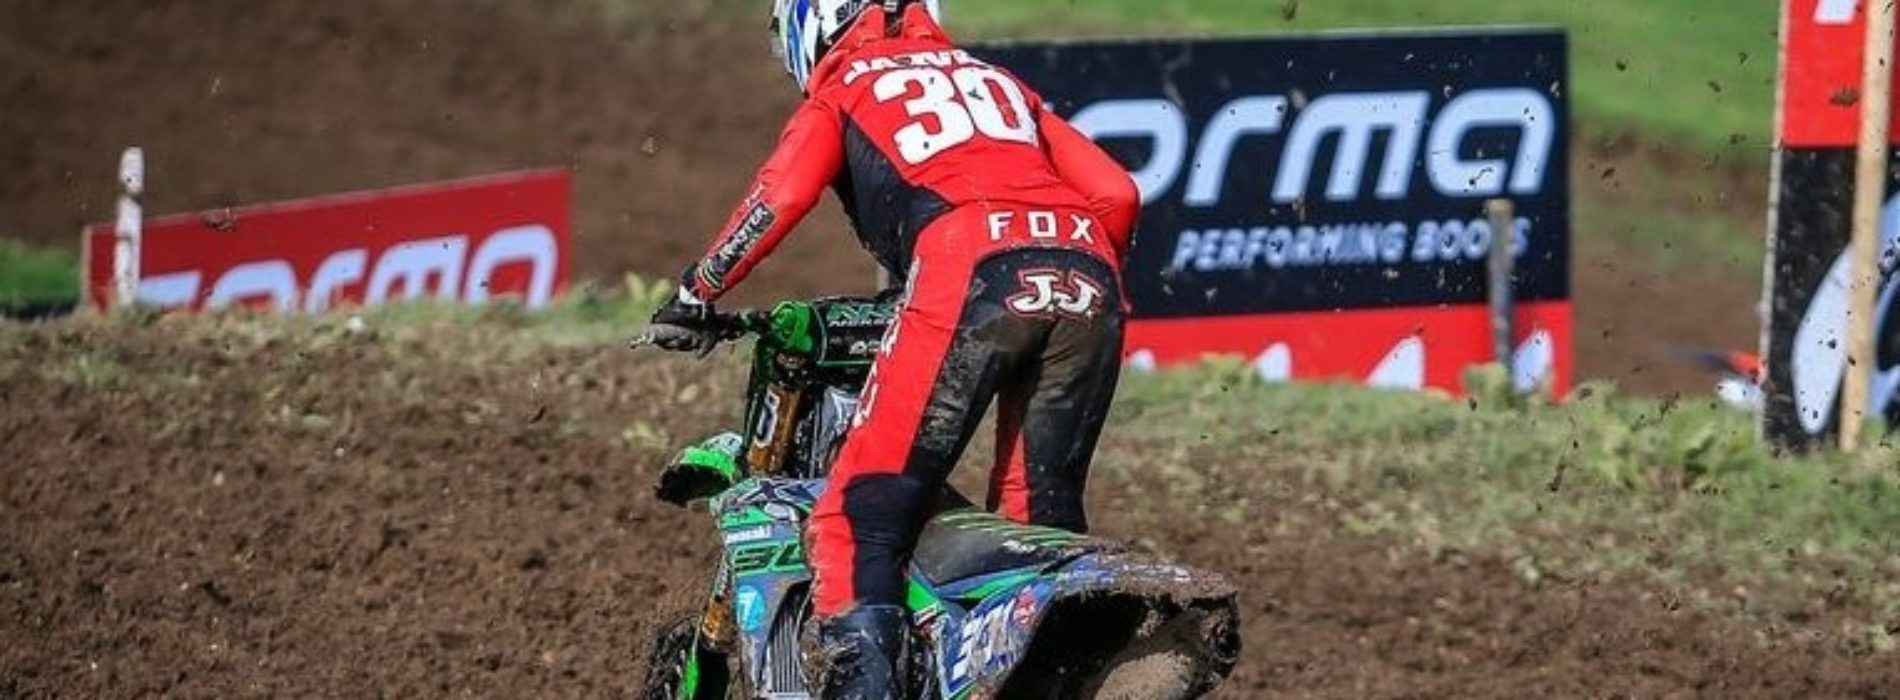 Jordan Jarvis raced debut 2020 WMX Round One and showed plenty of talent on track